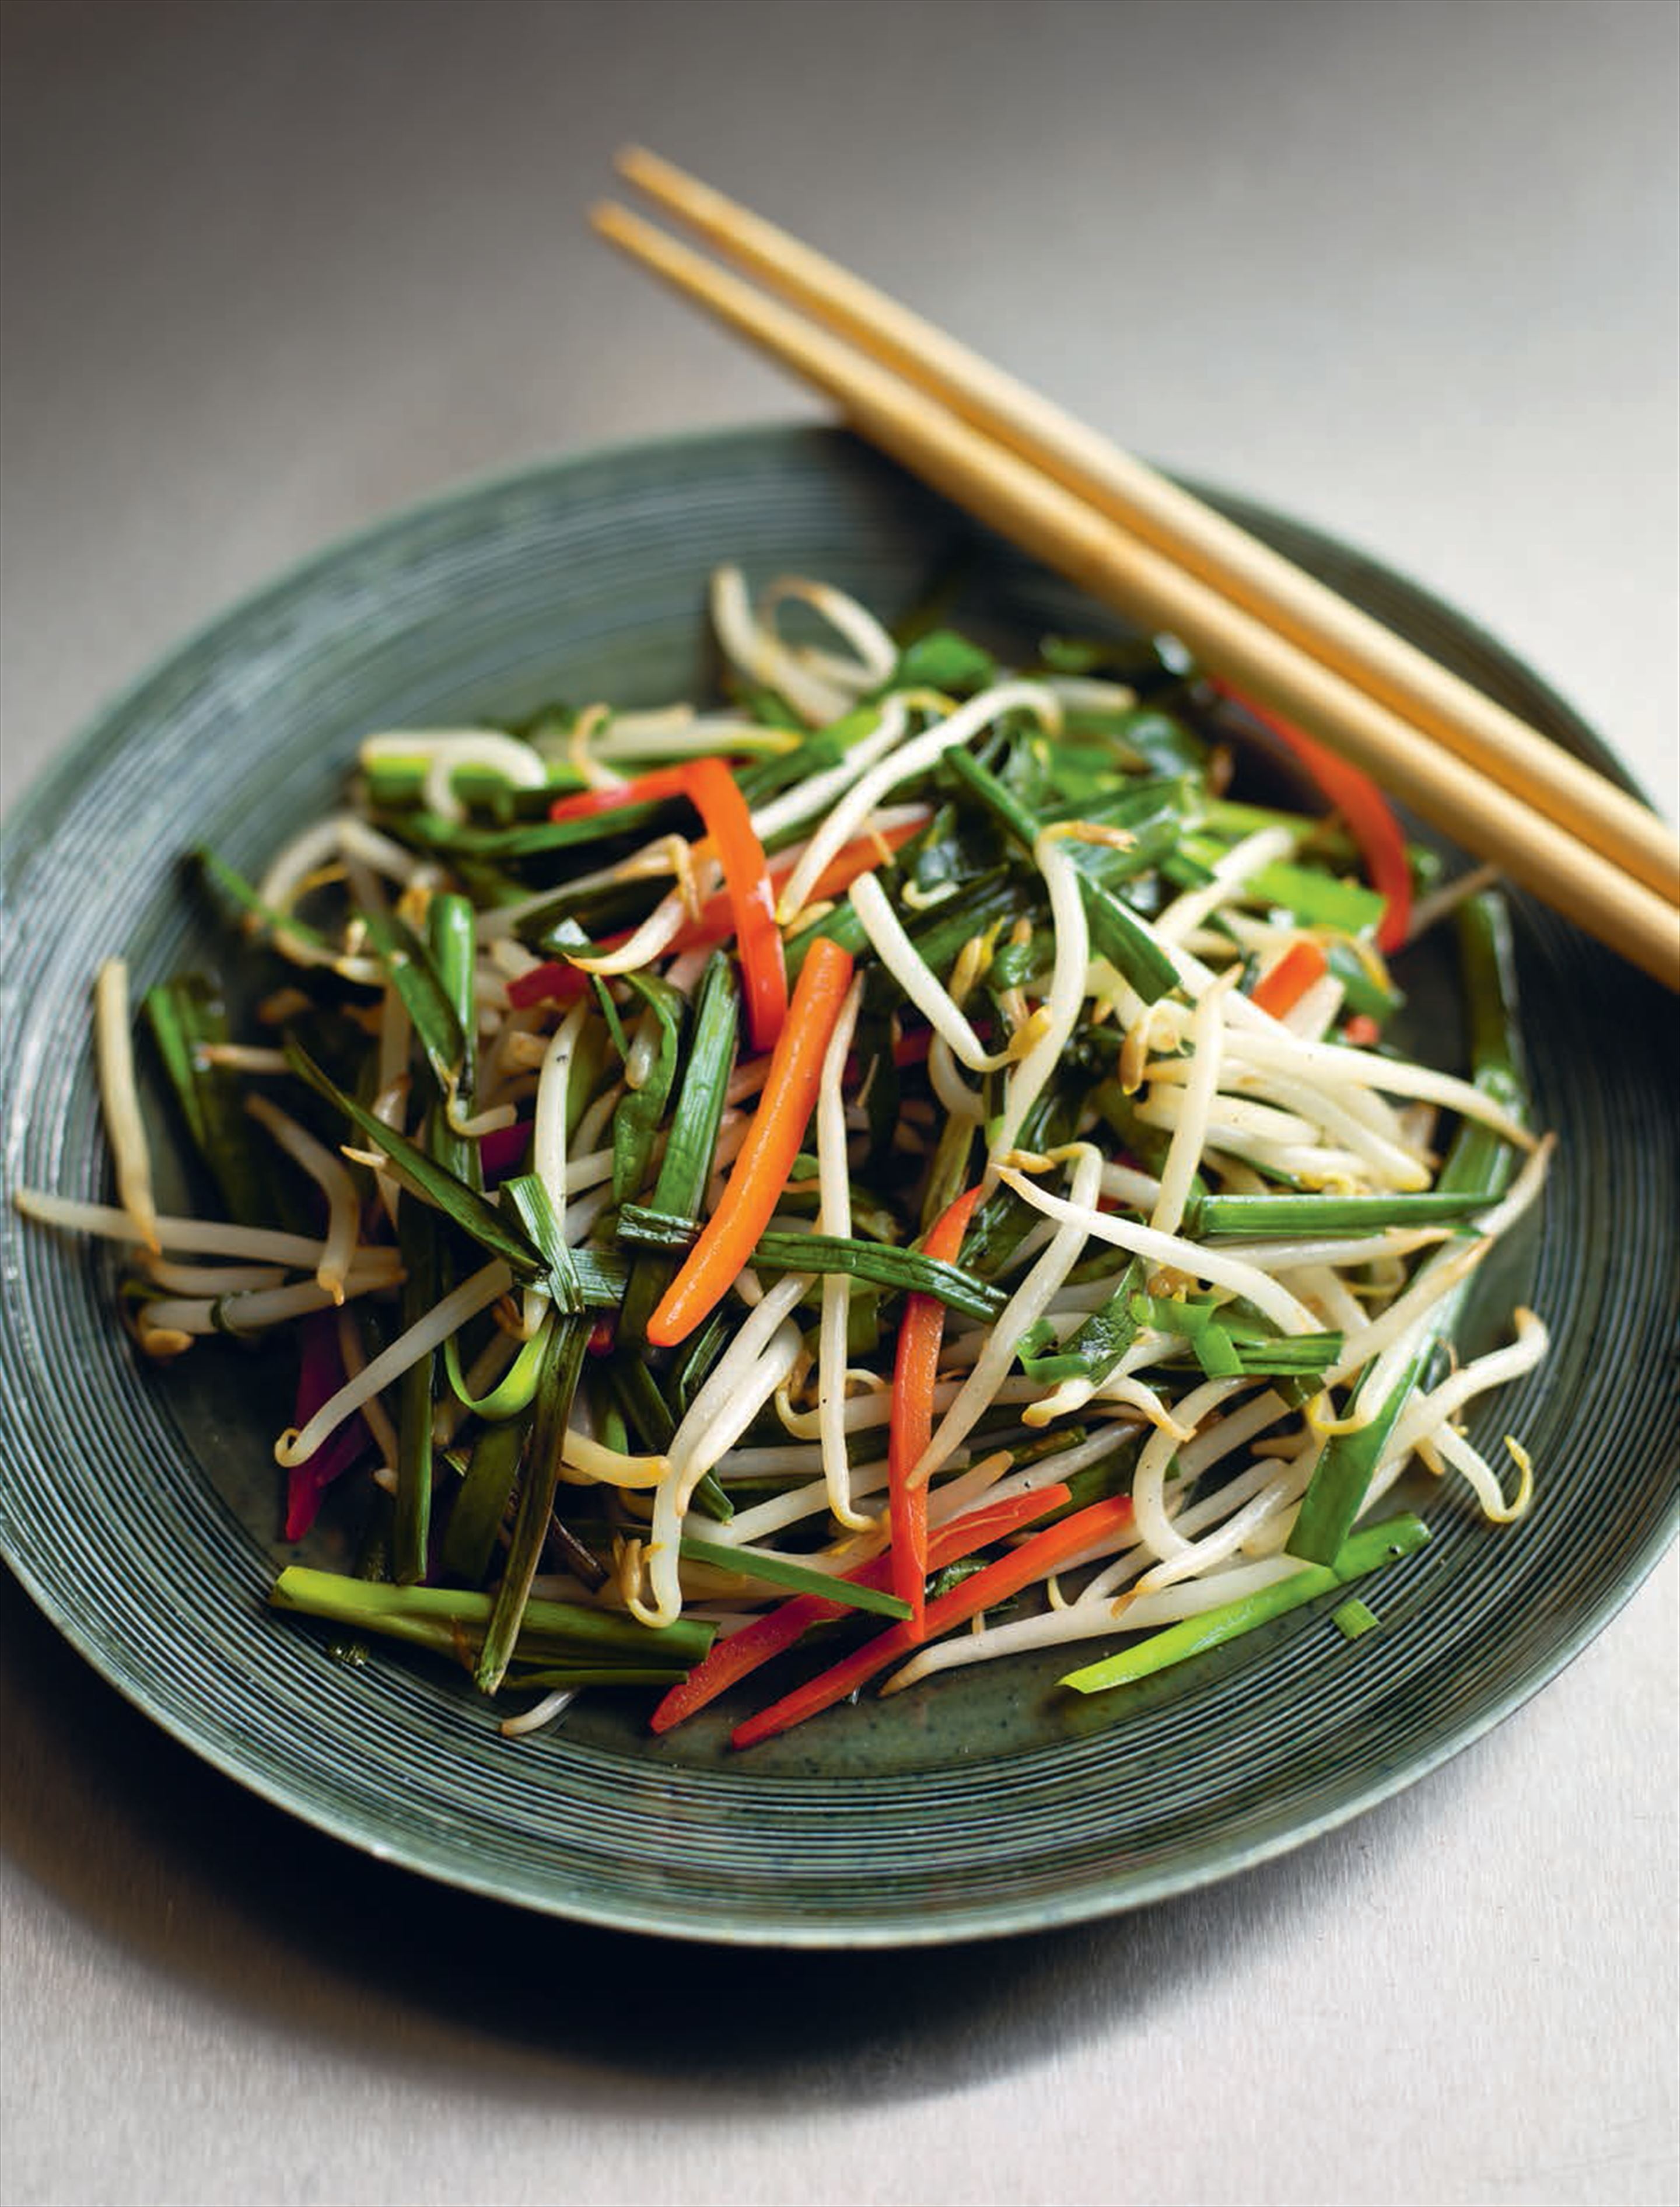 Stir-fried beansprouts with Chinese chives